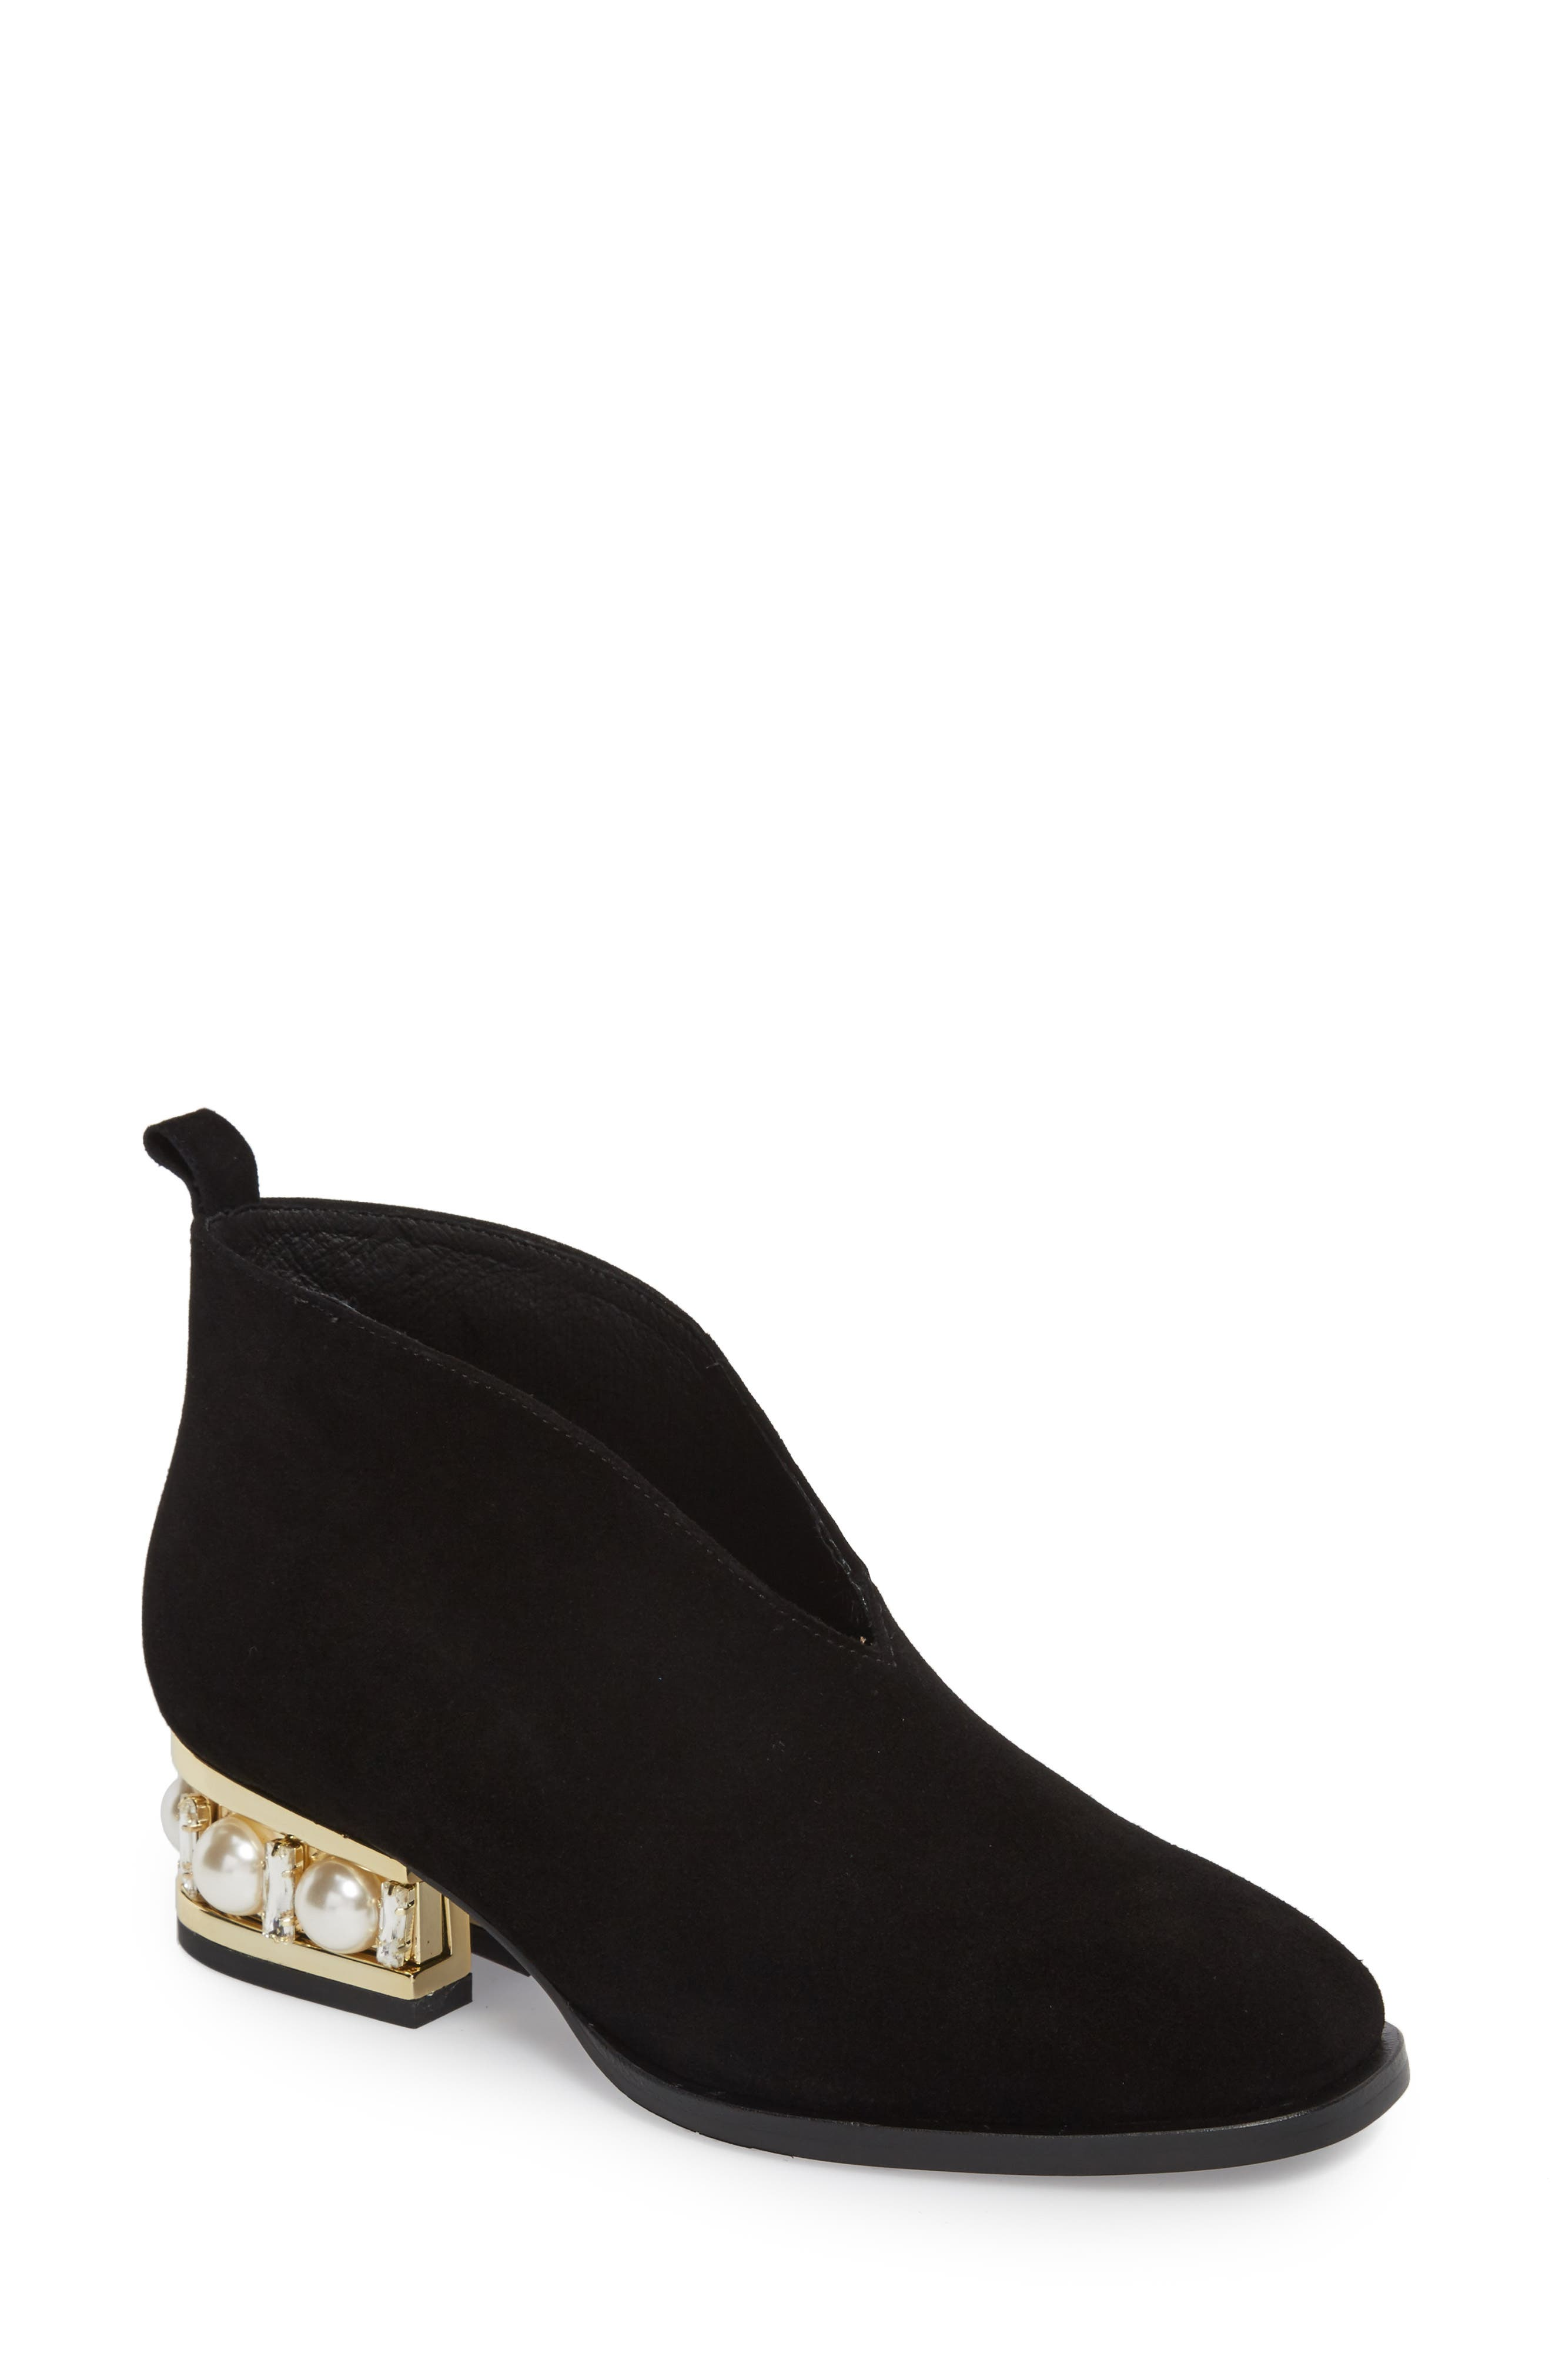 Jerman-VPJ Embellished Bootie,                             Main thumbnail 1, color,                             Black/ Gold Suede